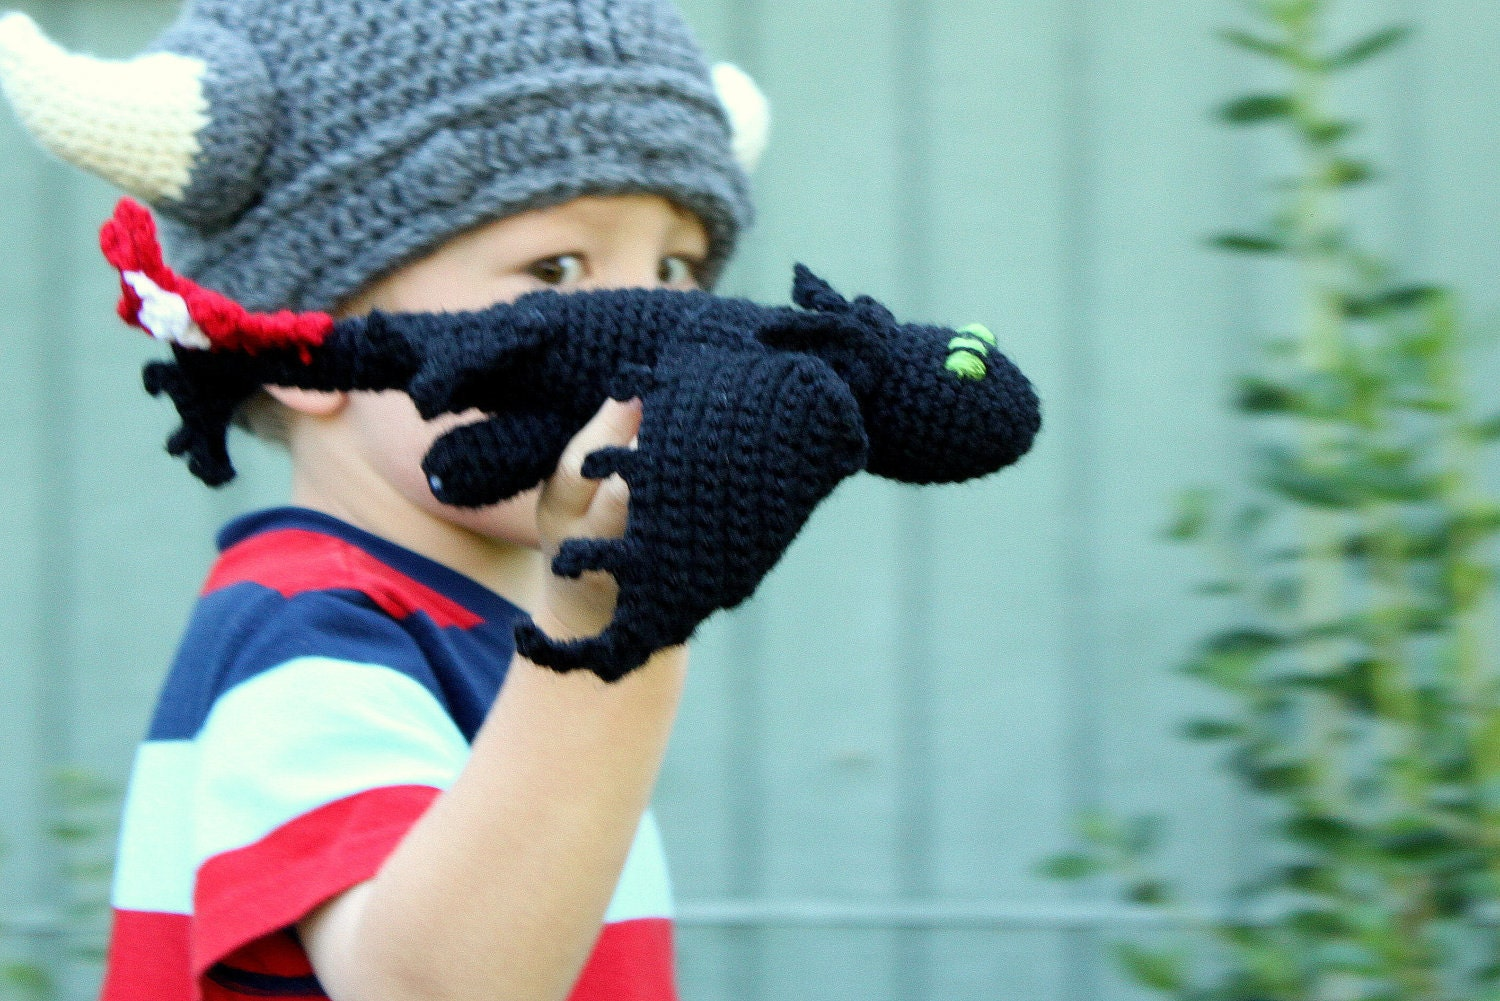 Free Crochet Pattern For Toothless The Dragon : Toothless/Night Fury Dragon PDF Pattern by BrindyRae on Etsy